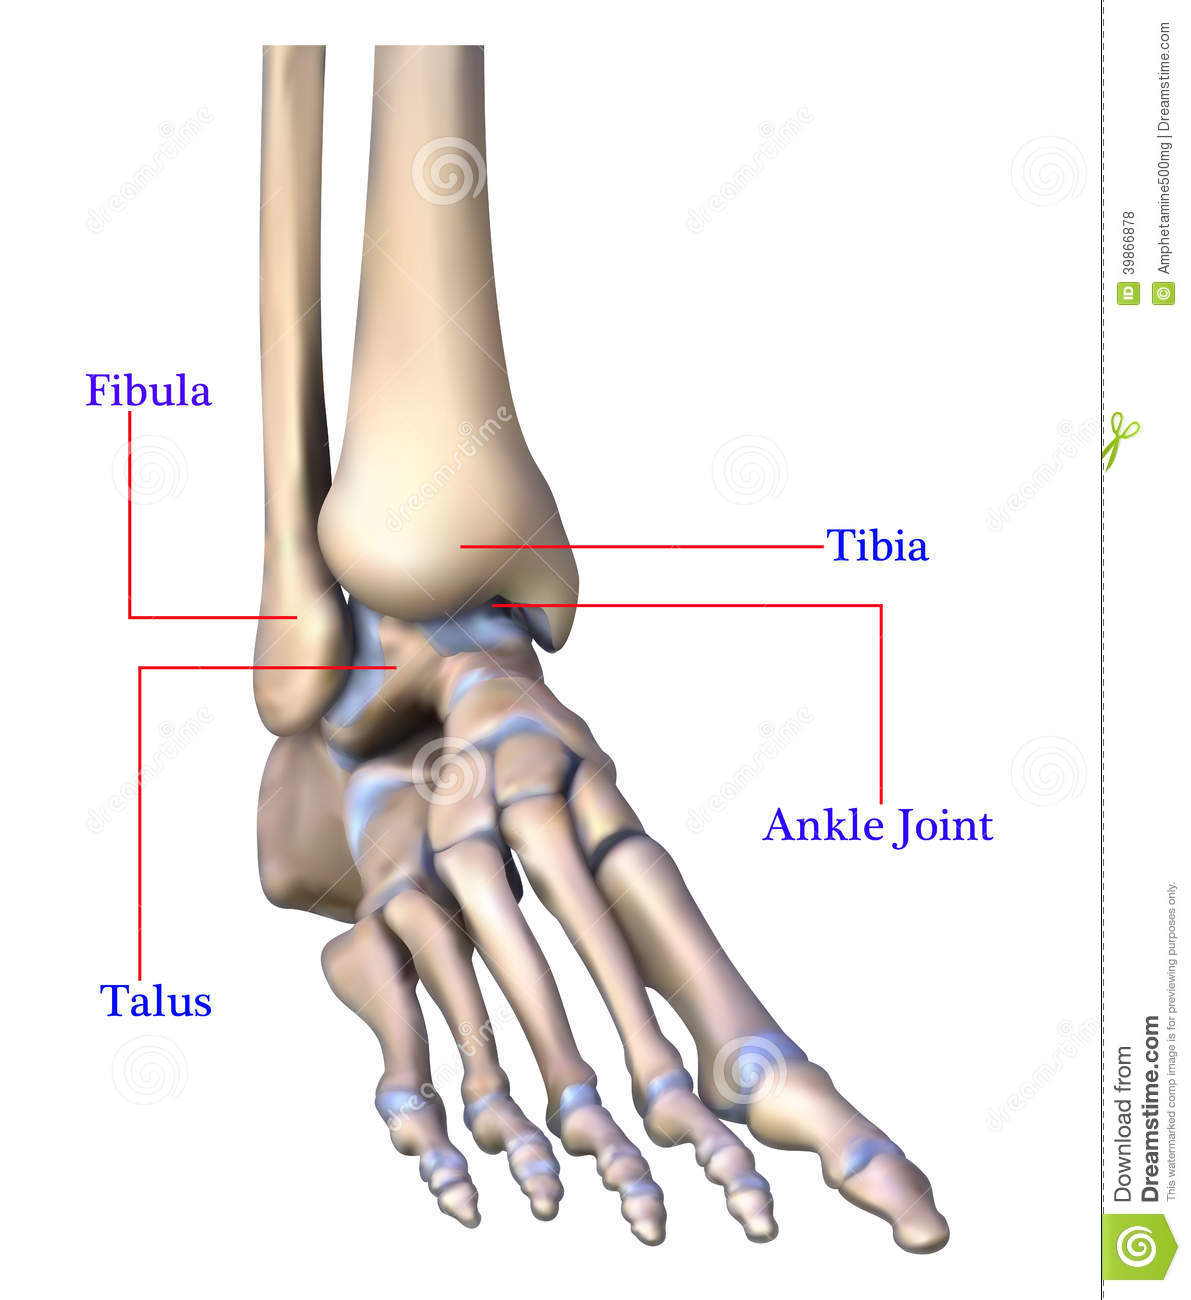 Anatomy of foot bone stock illustration. Illustration of graphic ...